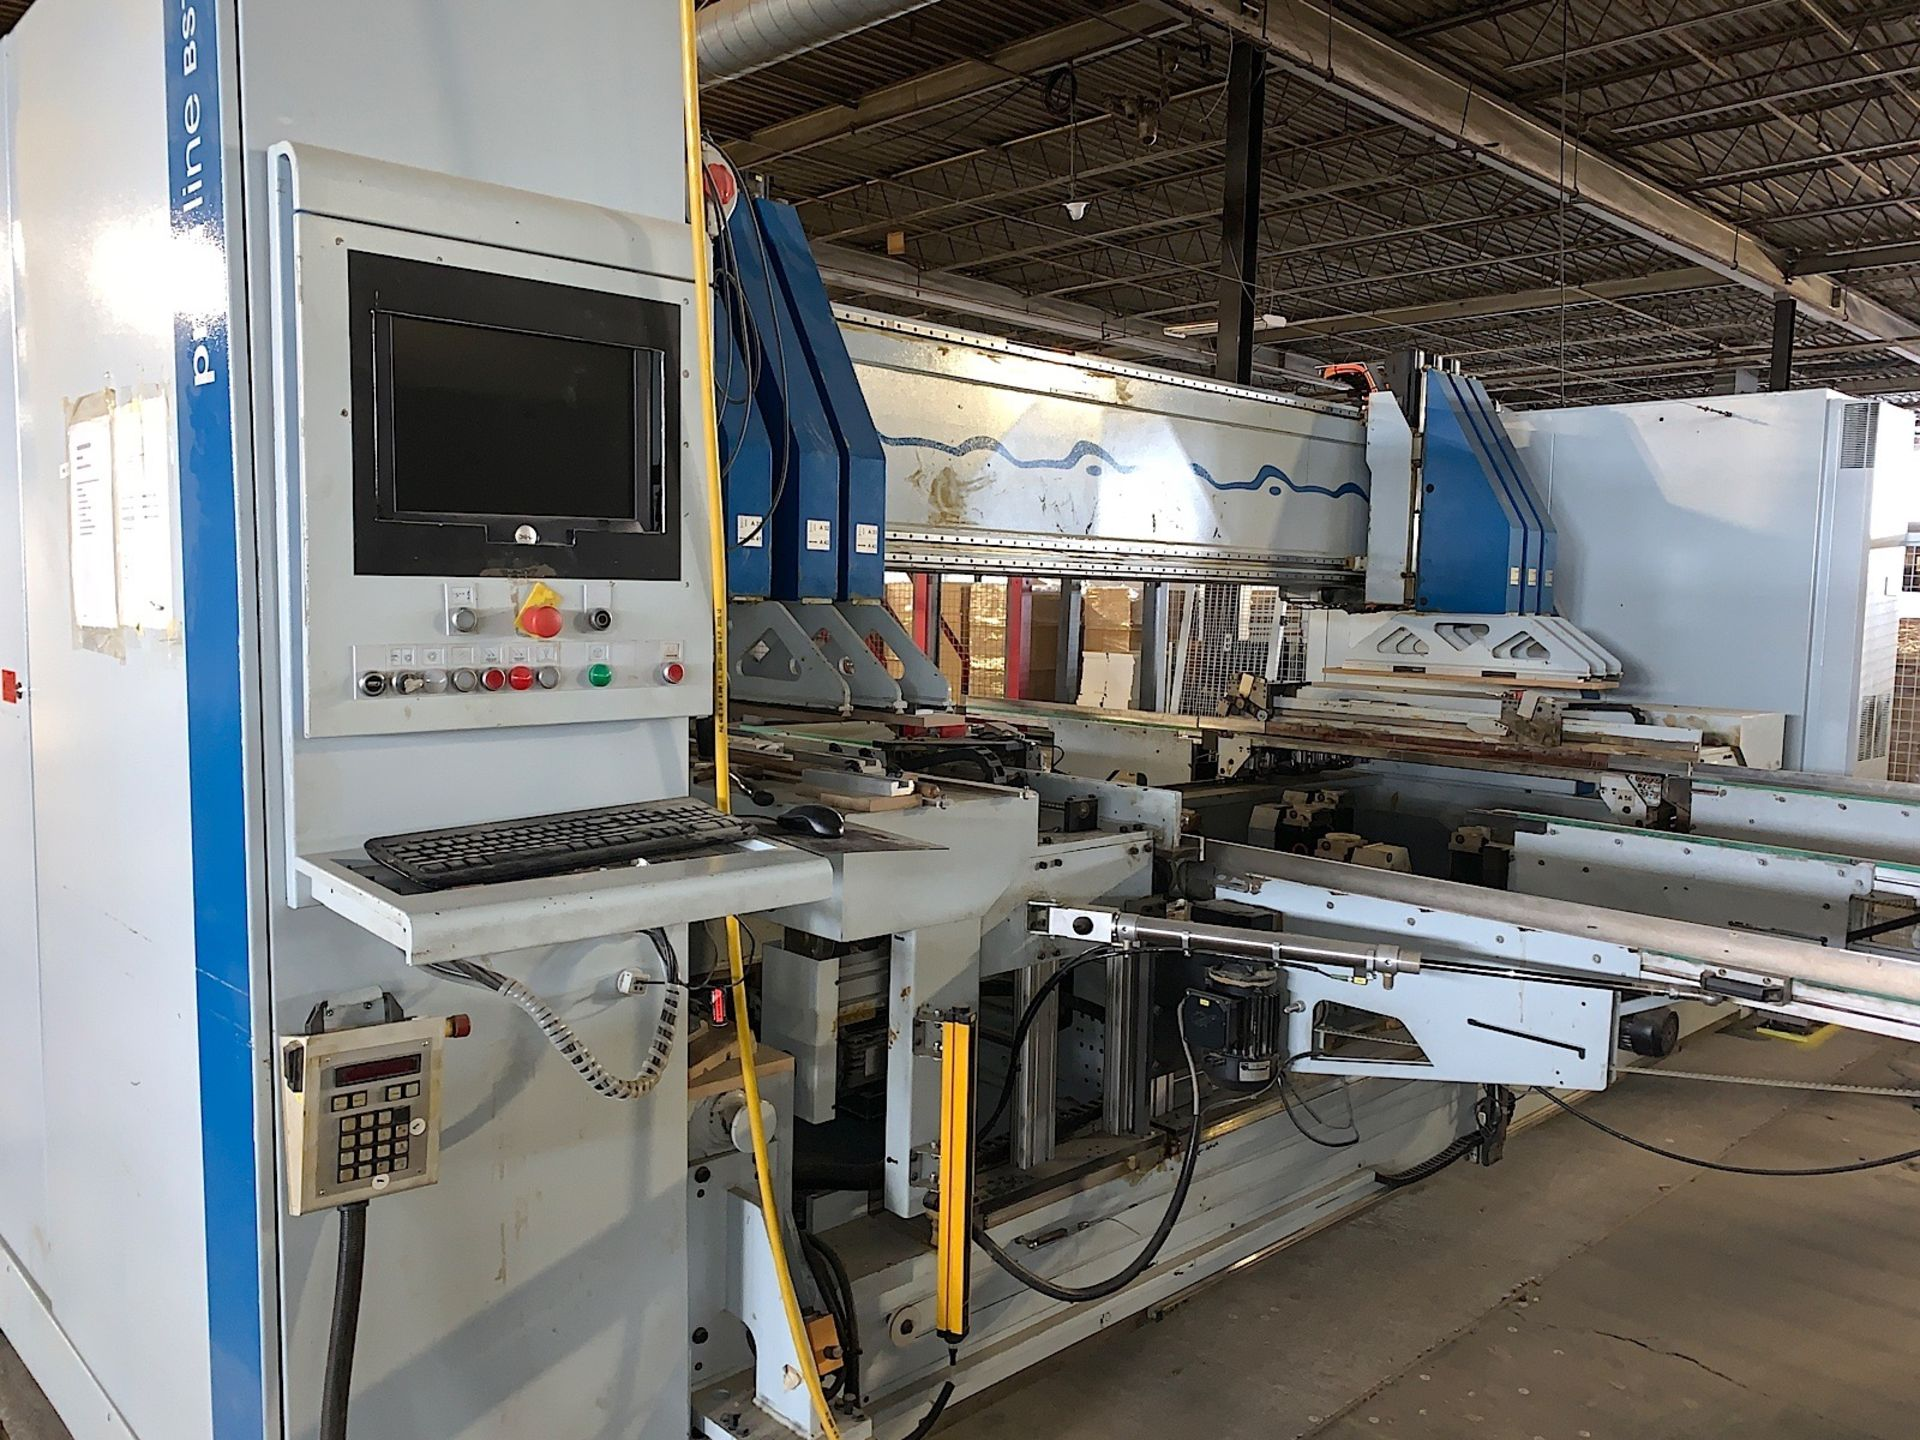 Lot 7f - 2006 WEEKE (BST 750) BOTTOM CNC DRILLING MACHINE (SOLD SUBJECT TO BULK BID PRICE OF LOT 7)